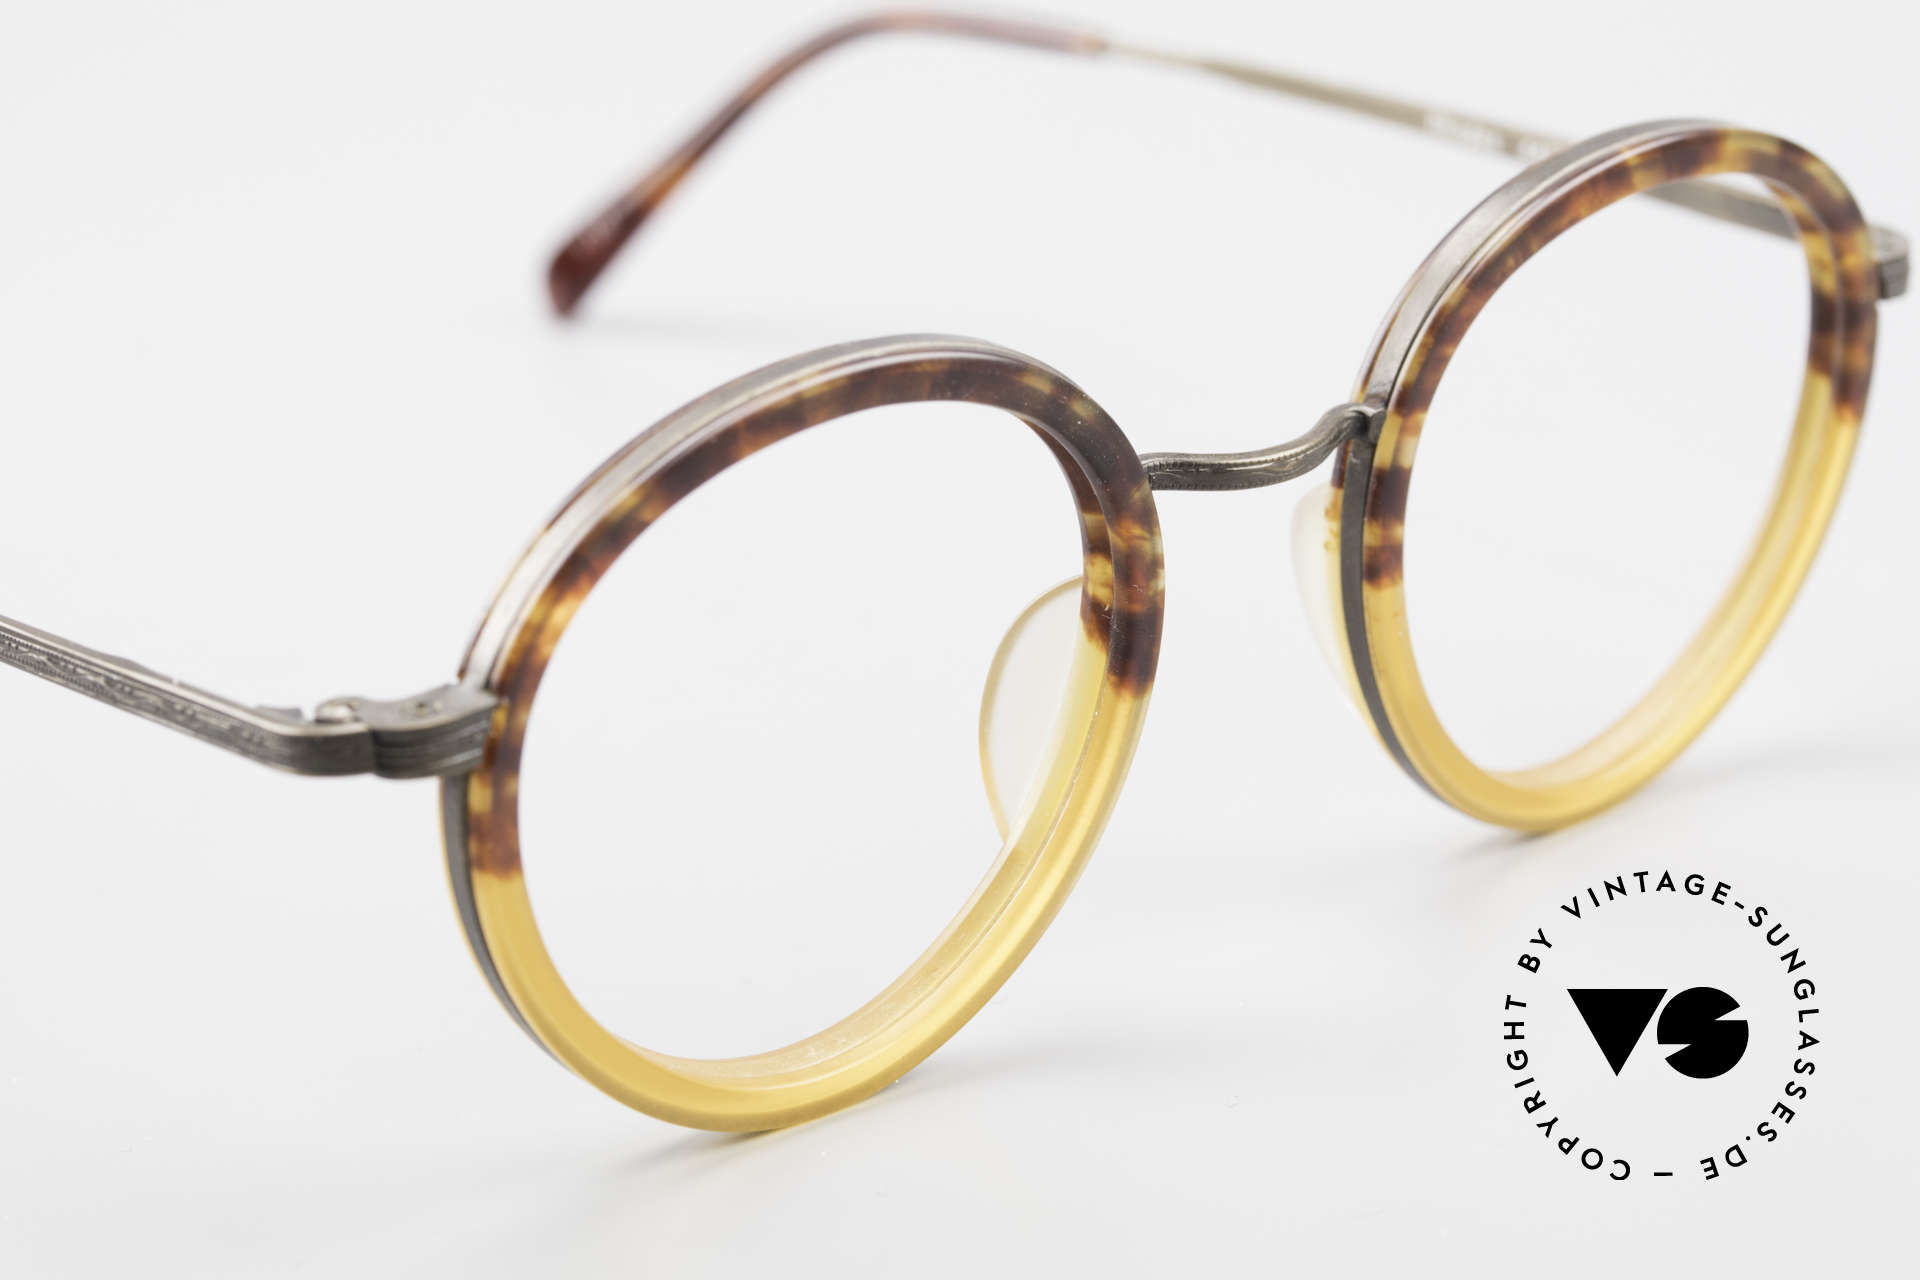 Beau Monde Rhodes Round Old Vintage Frame 90's, made with attention to details (check all the engravings), Made for Men and Women